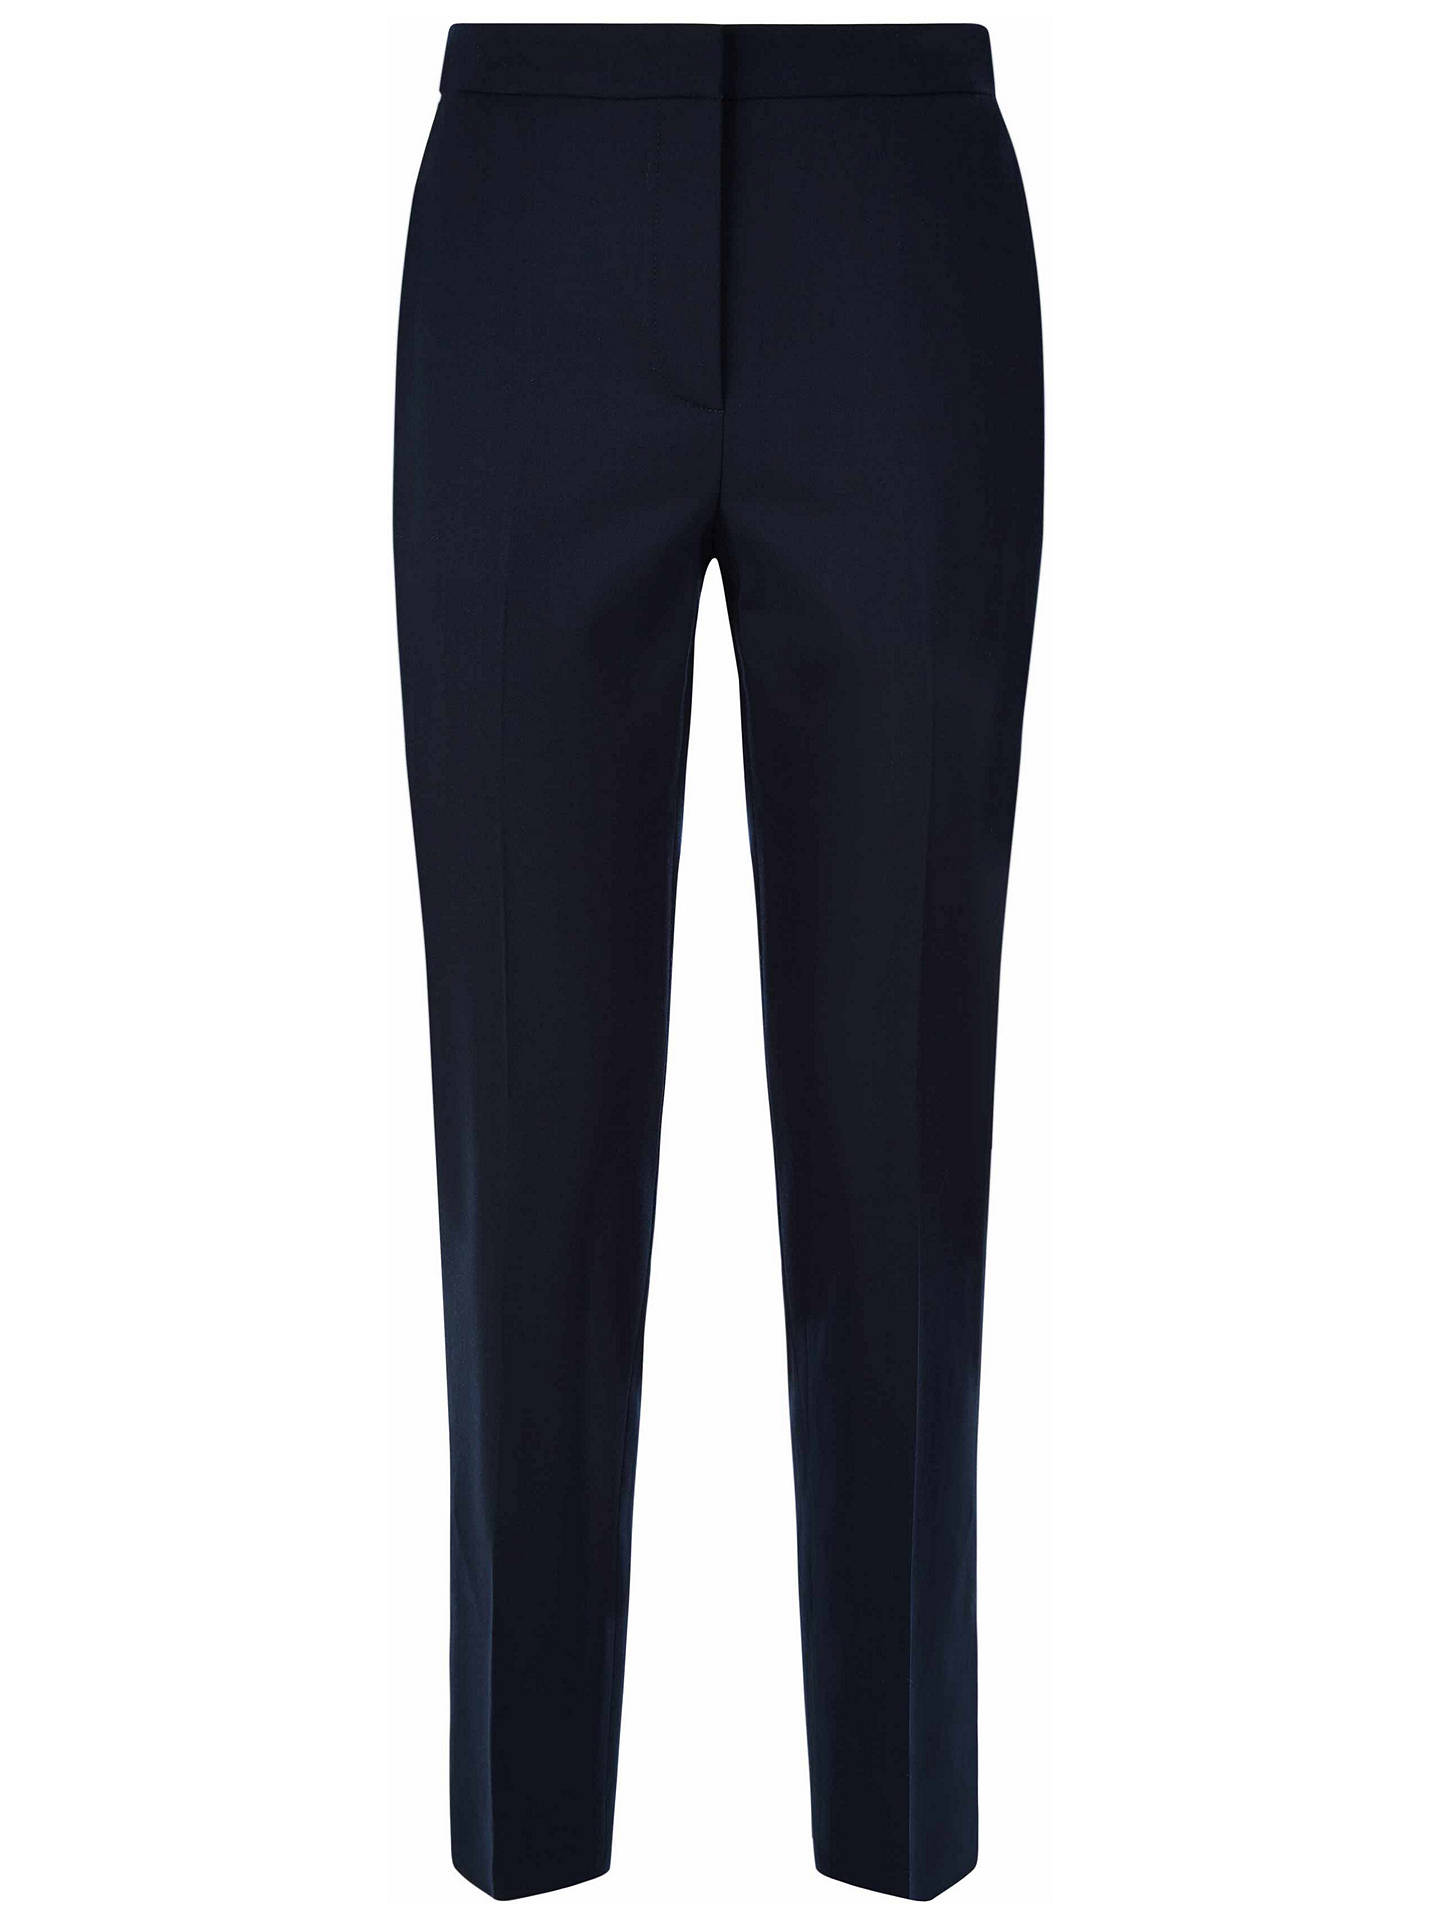 BuyJaeger High Waist Peg Trousers, Midnight, 6 Online at johnlewis.com